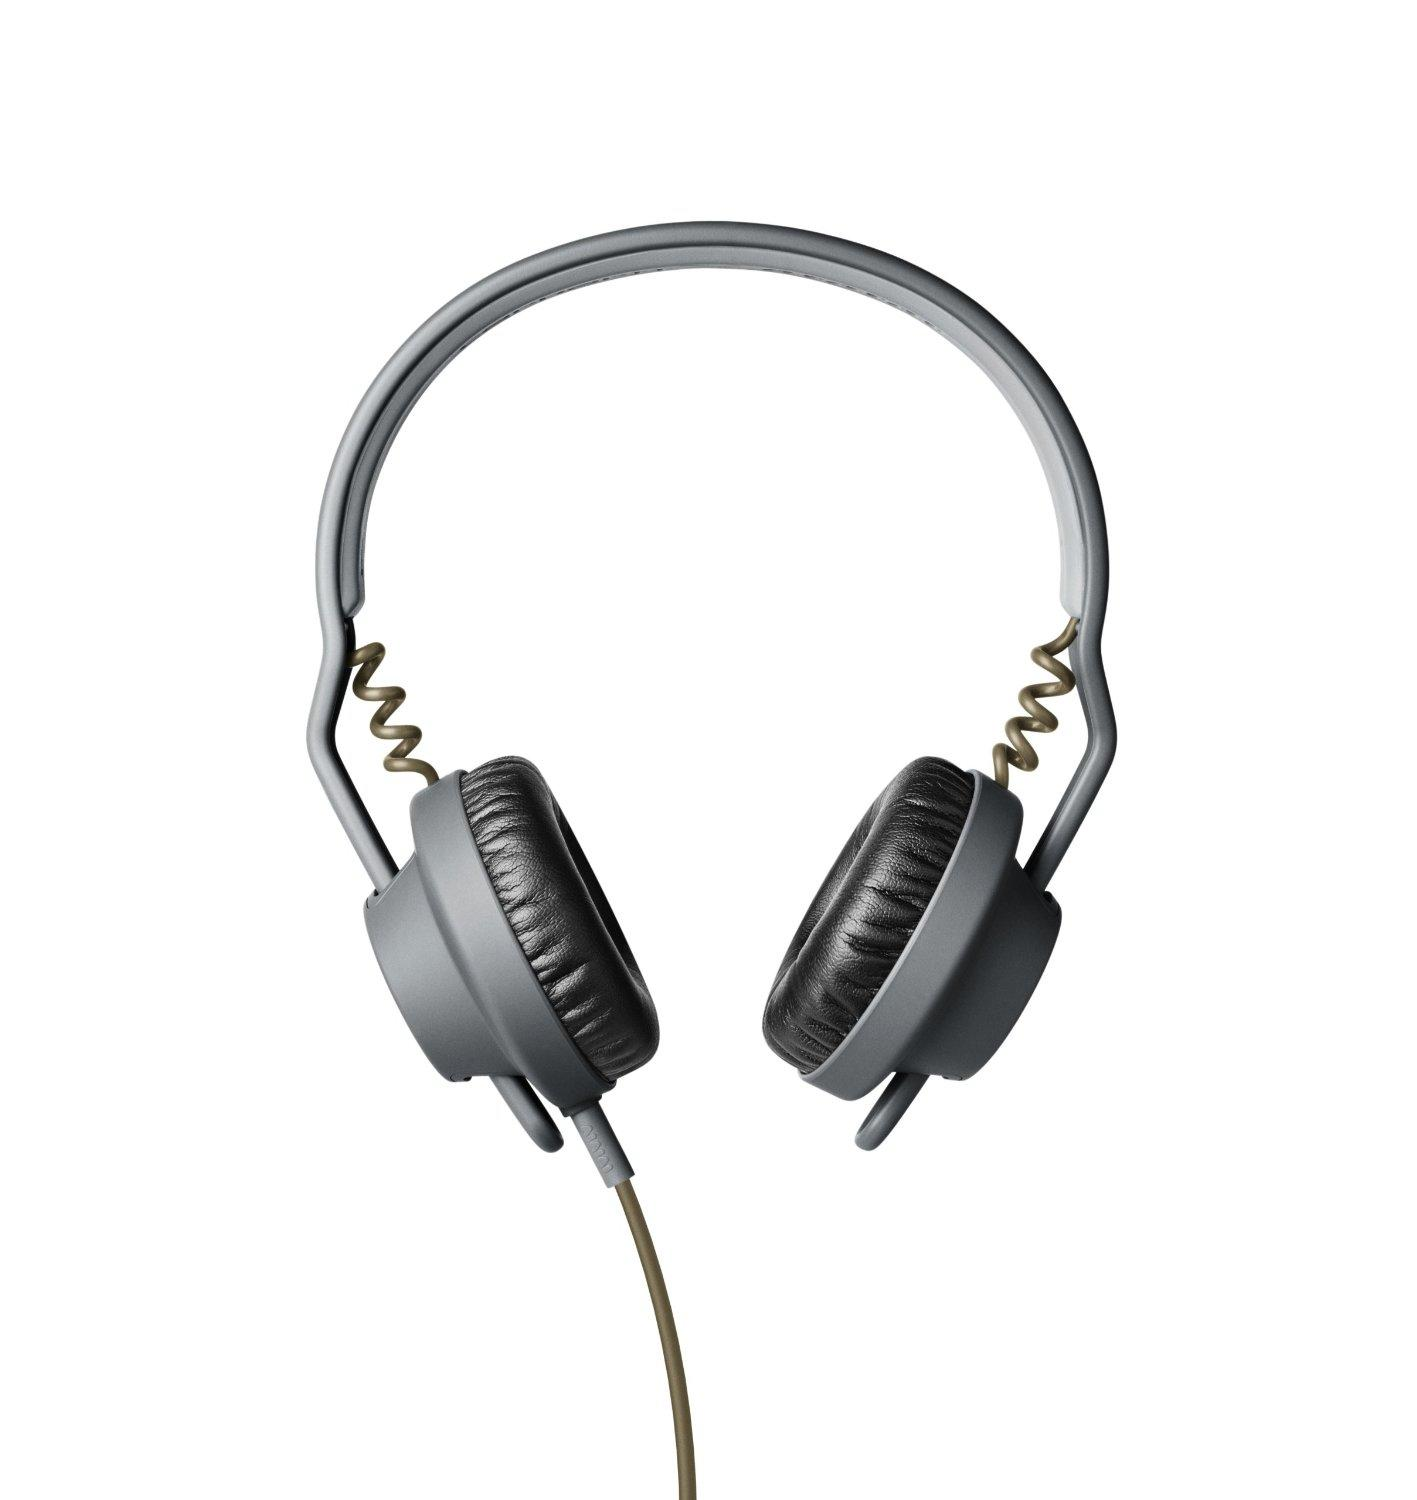 AIAIAI TMA-1 DJ Headphone with Carhartt WIP Edition Mic